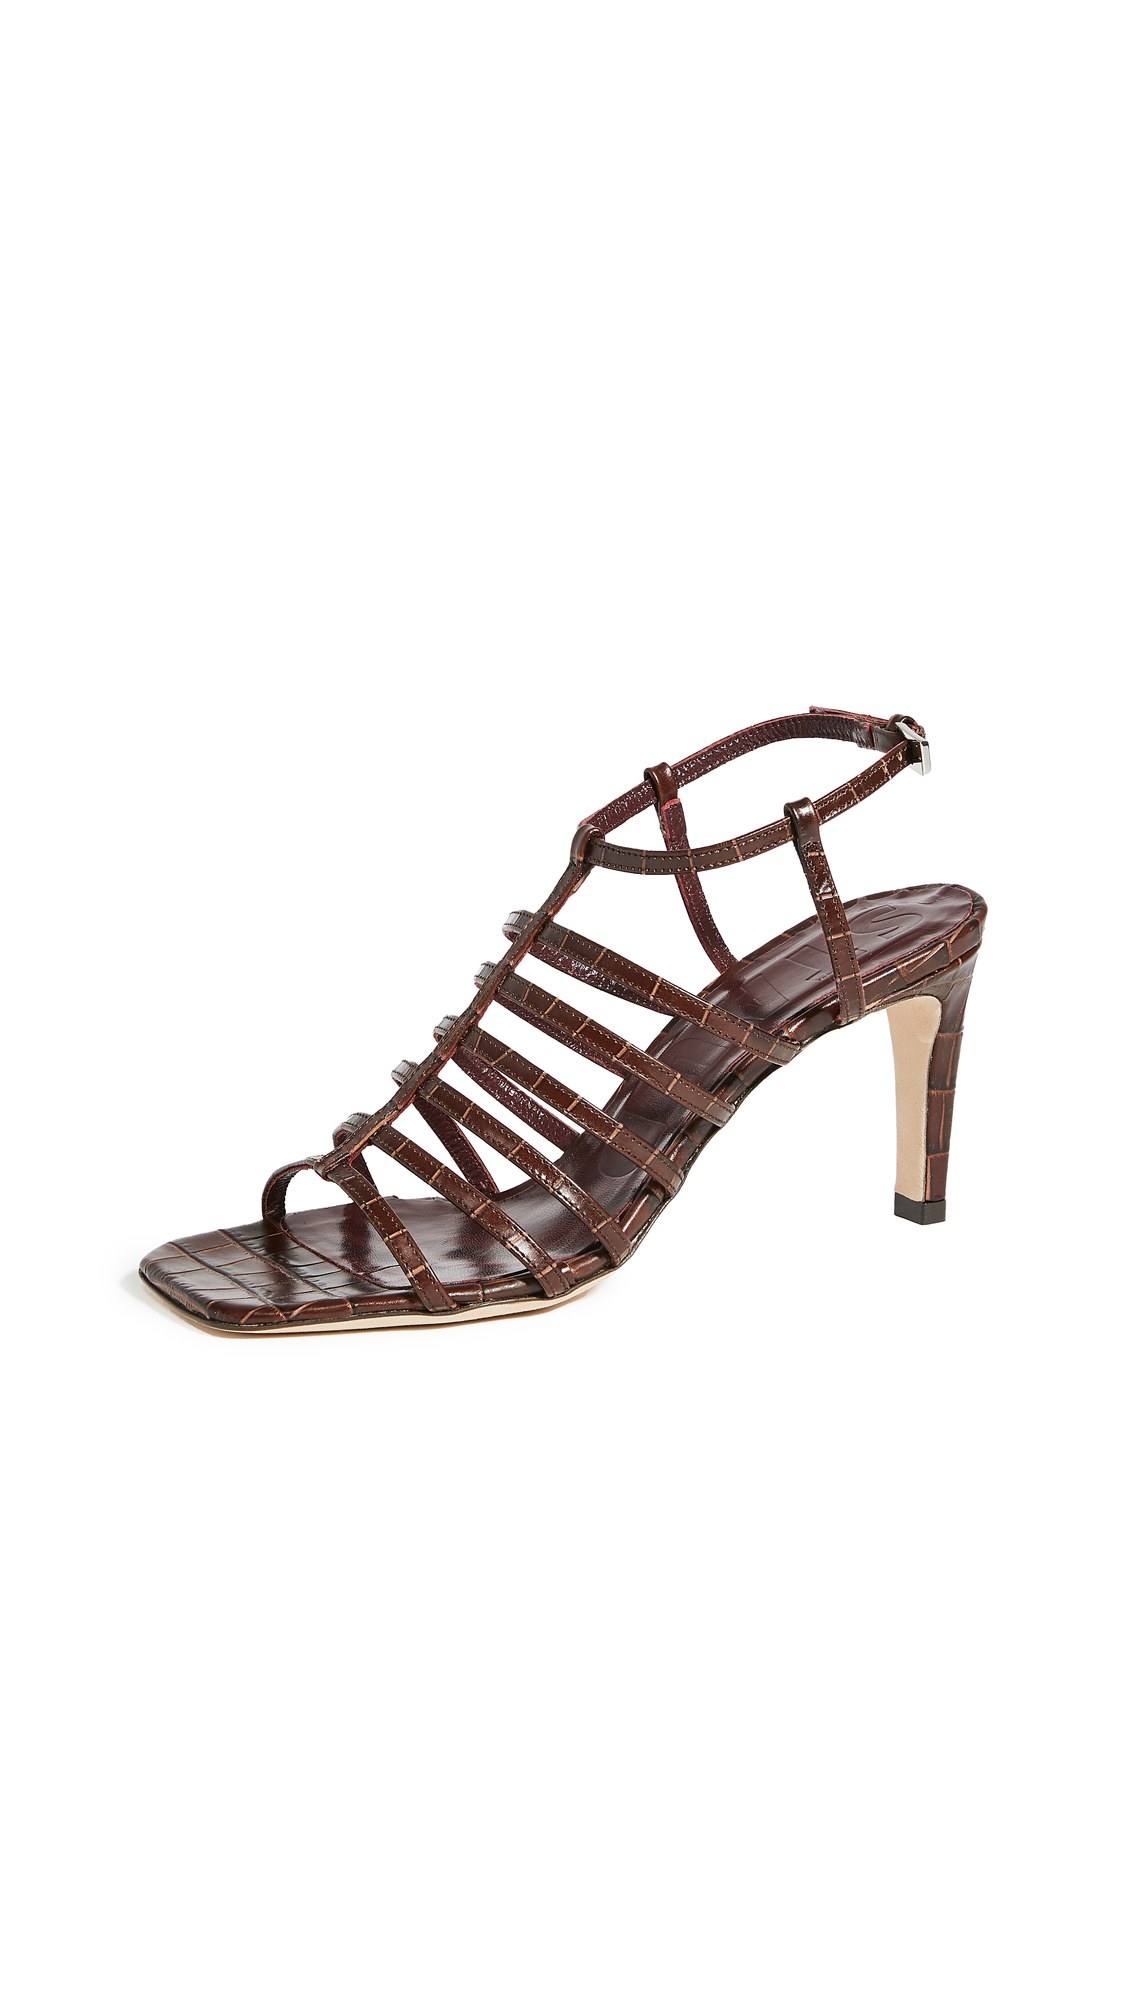 STAUD Ann Sandals